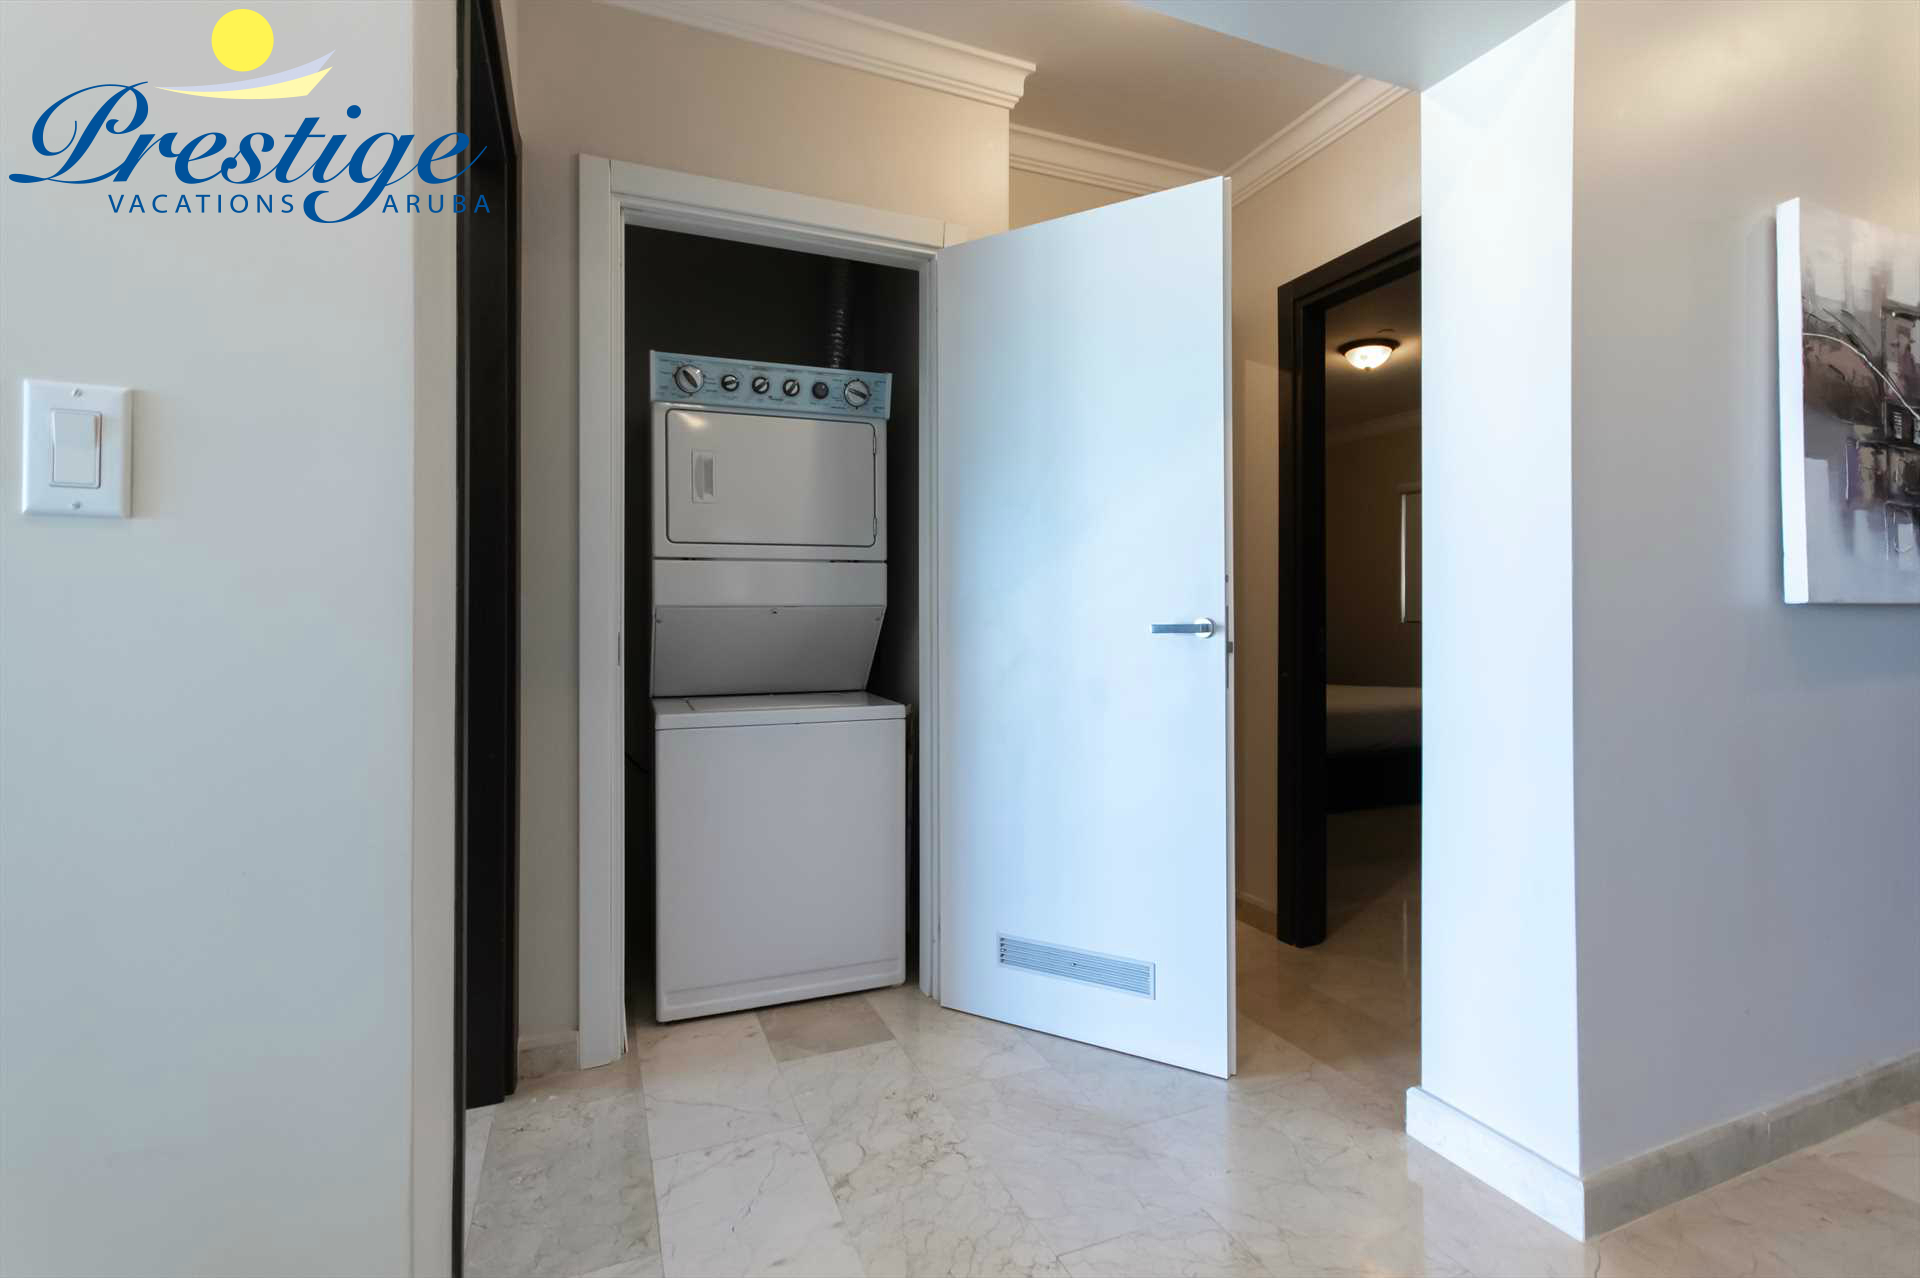 Washer and dryer are conveniently located in the condo